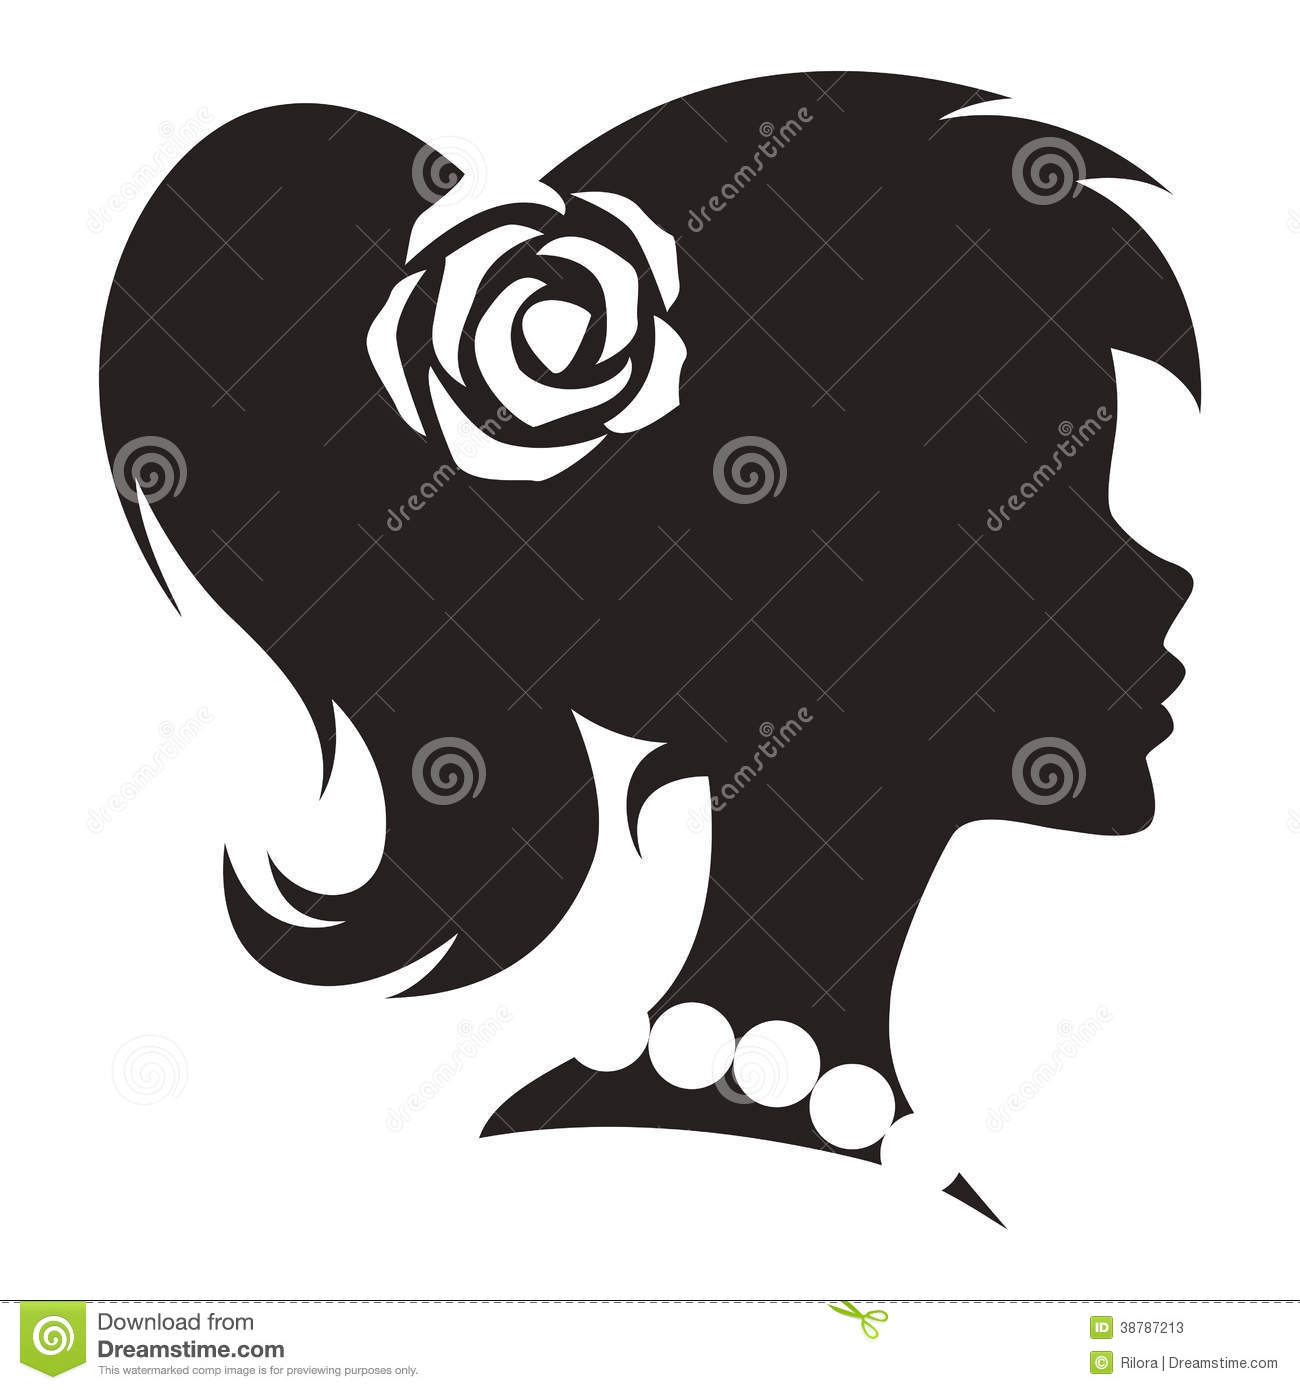 5 Vintage Woman Vector Images